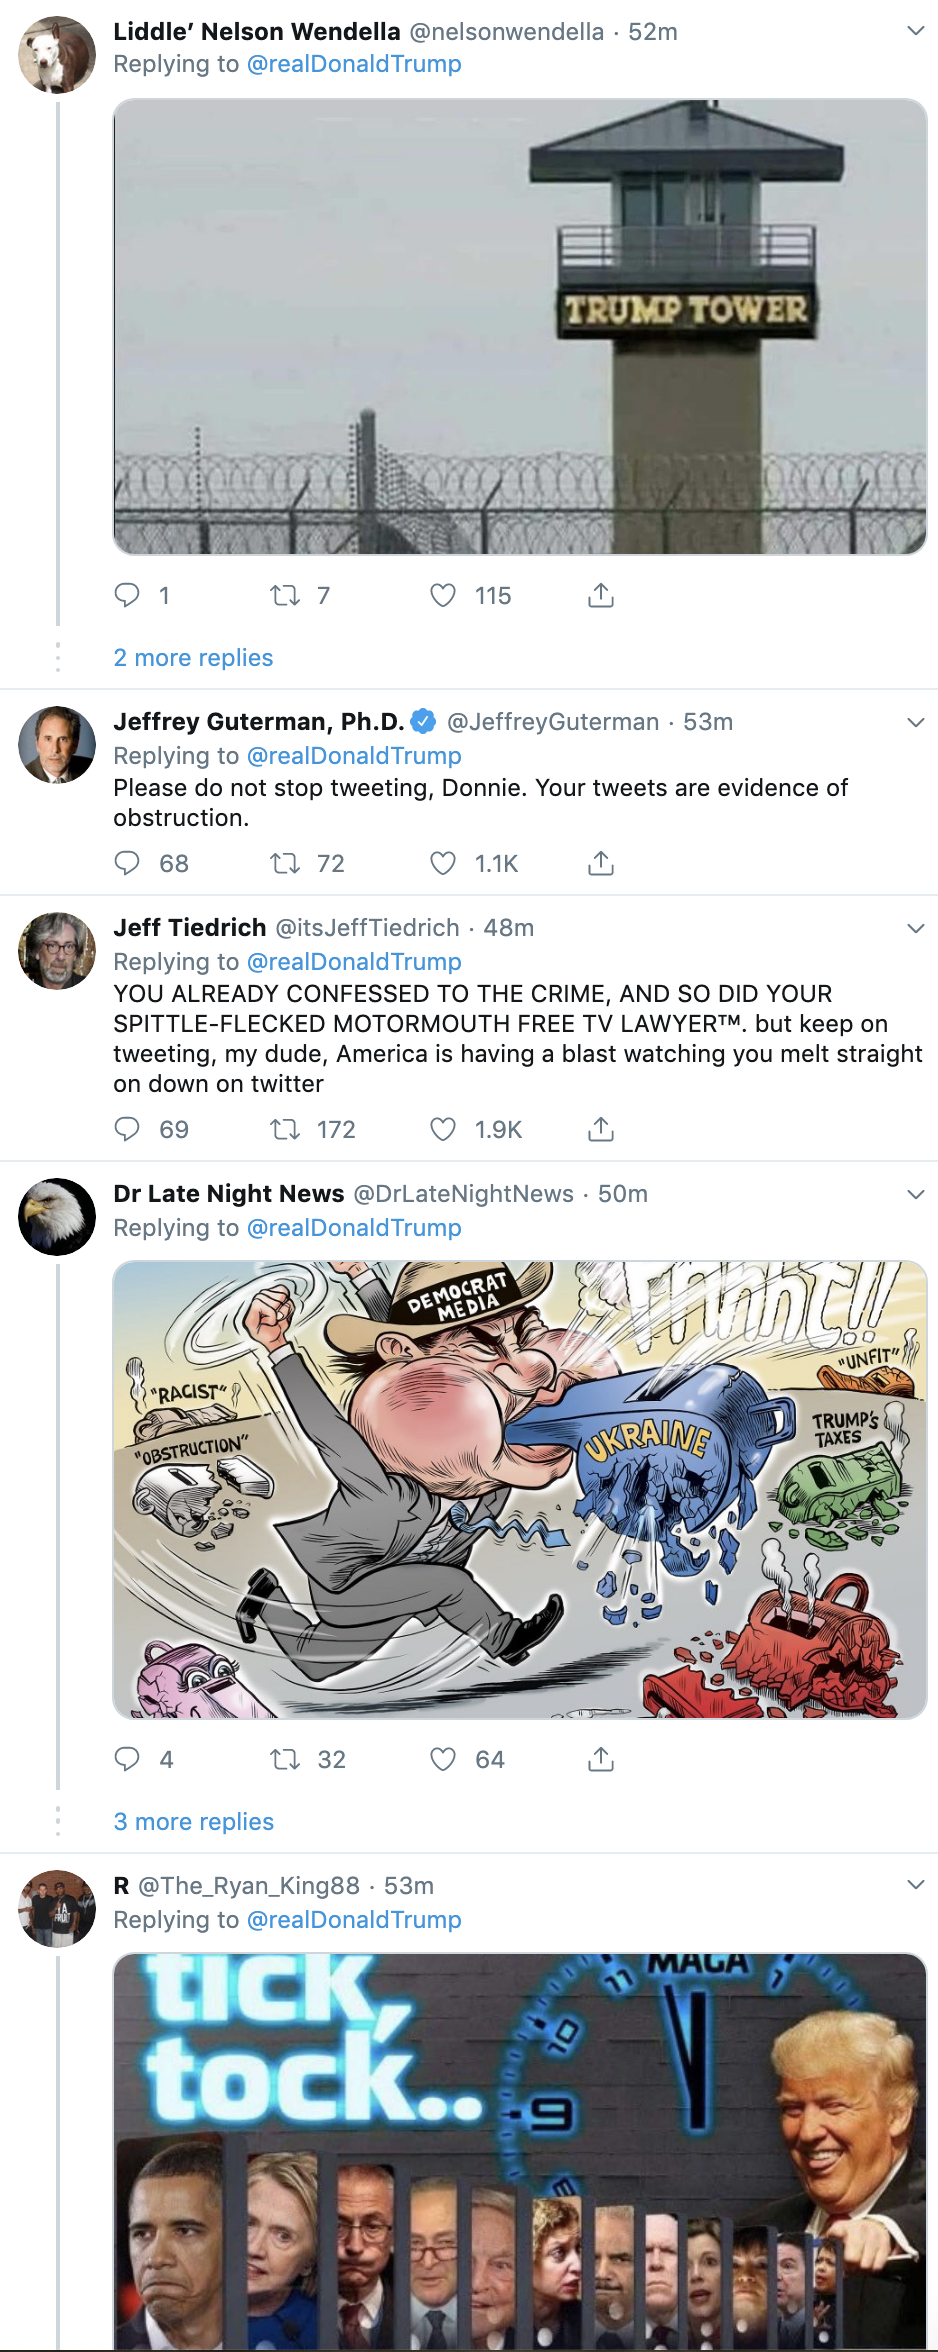 a9bd51e0-screen-shot-2019-10-01-at-9.14.01-am Trump Made Himself Look Guilty On Twitter Tuesday - Here's Why Corruption Crime Domestic Policy Donald Trump Economy Election 2020 Featured Foreign Policy Politics Top Stories